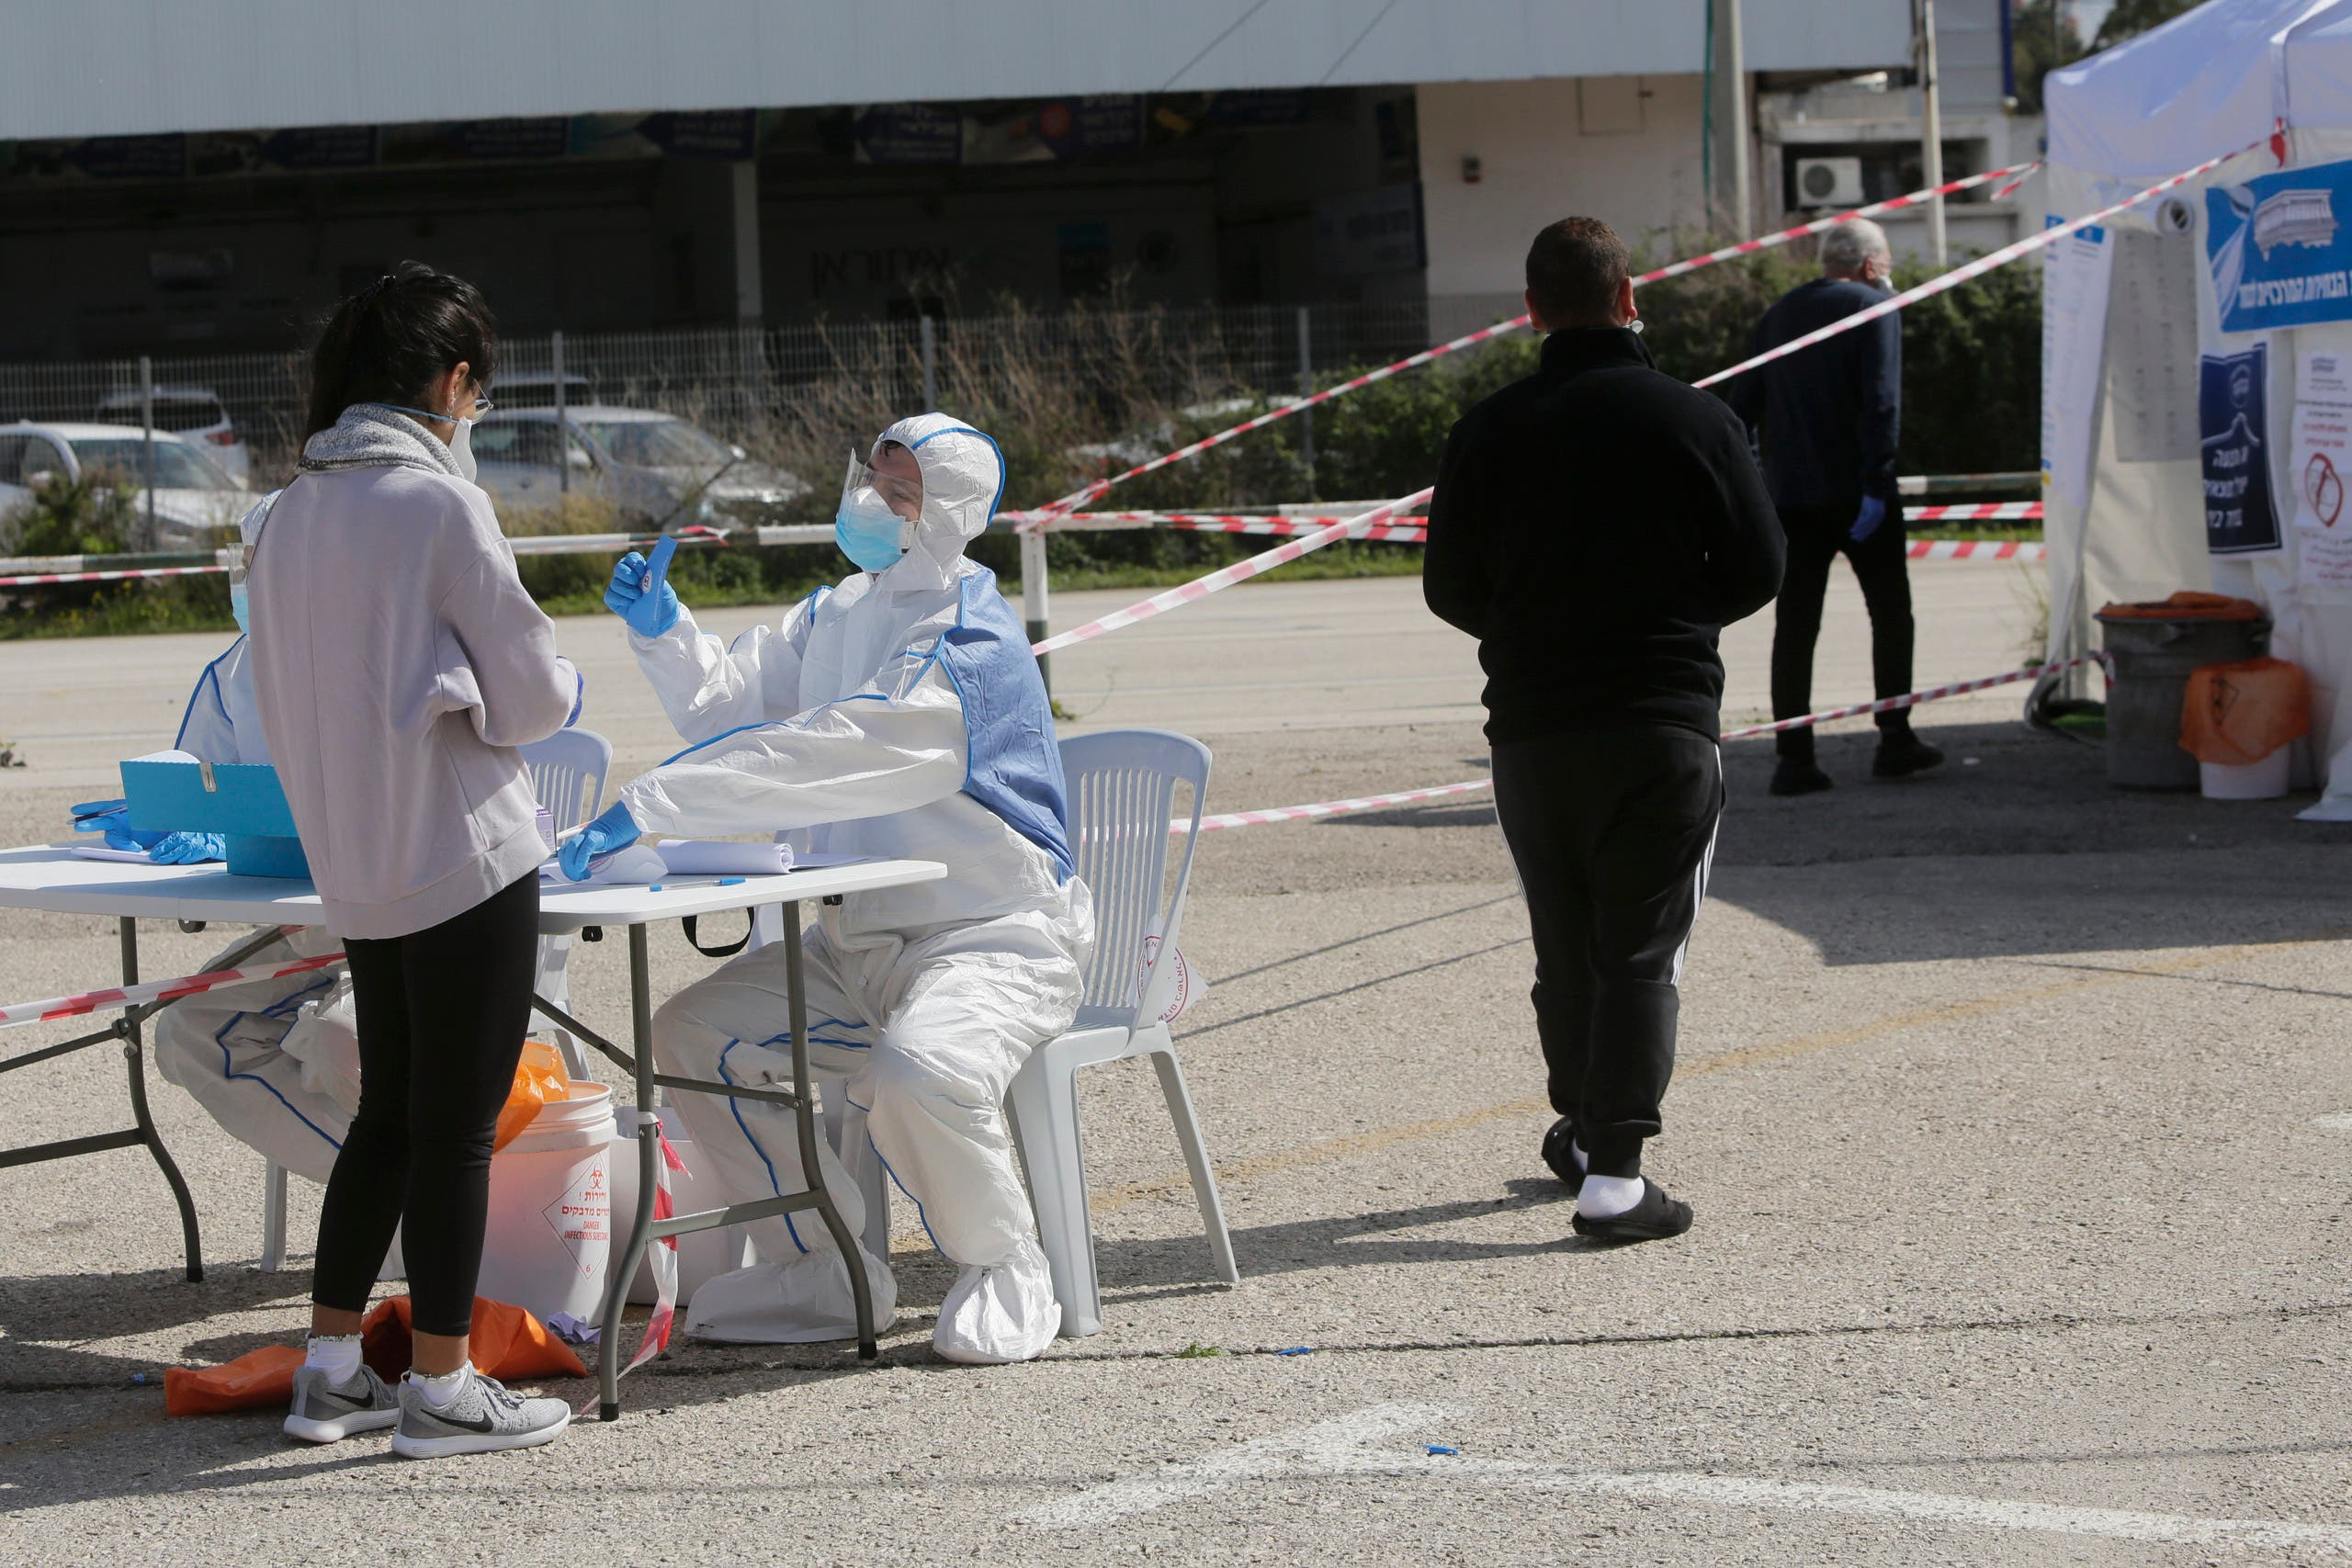 People quarantined with Corona virus arrive to vote in Haifa, Israel, March 2, 2020 (AP)